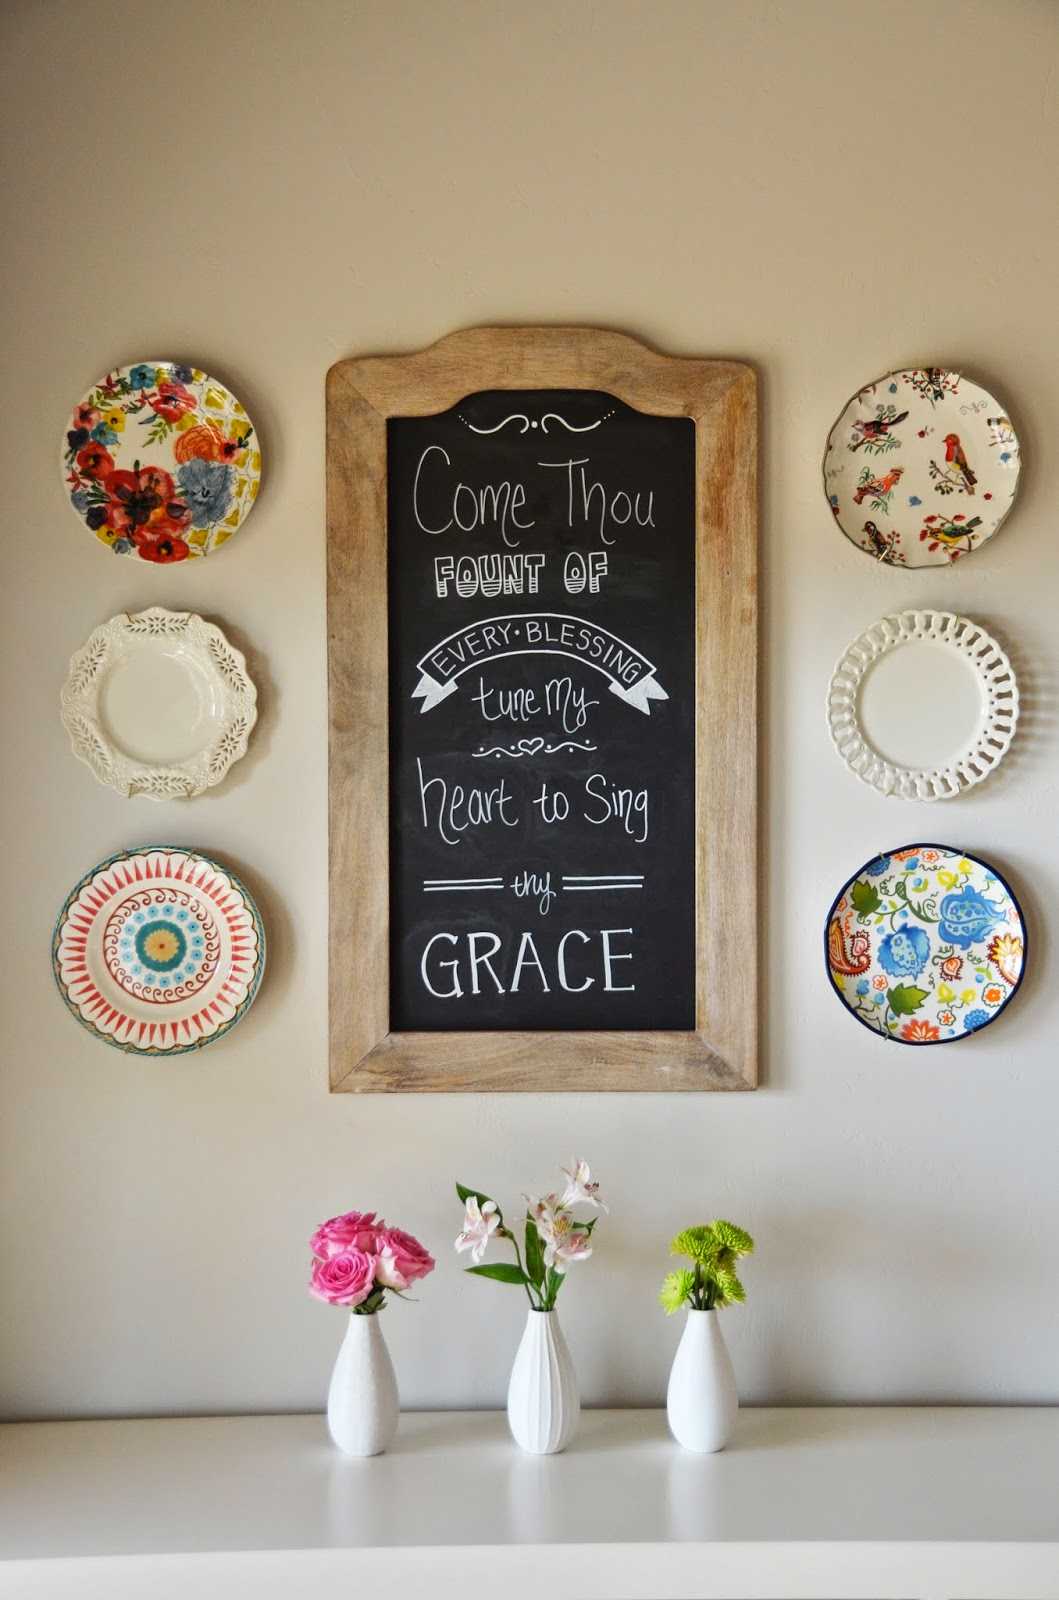 The Good Life: Decorating with Plates